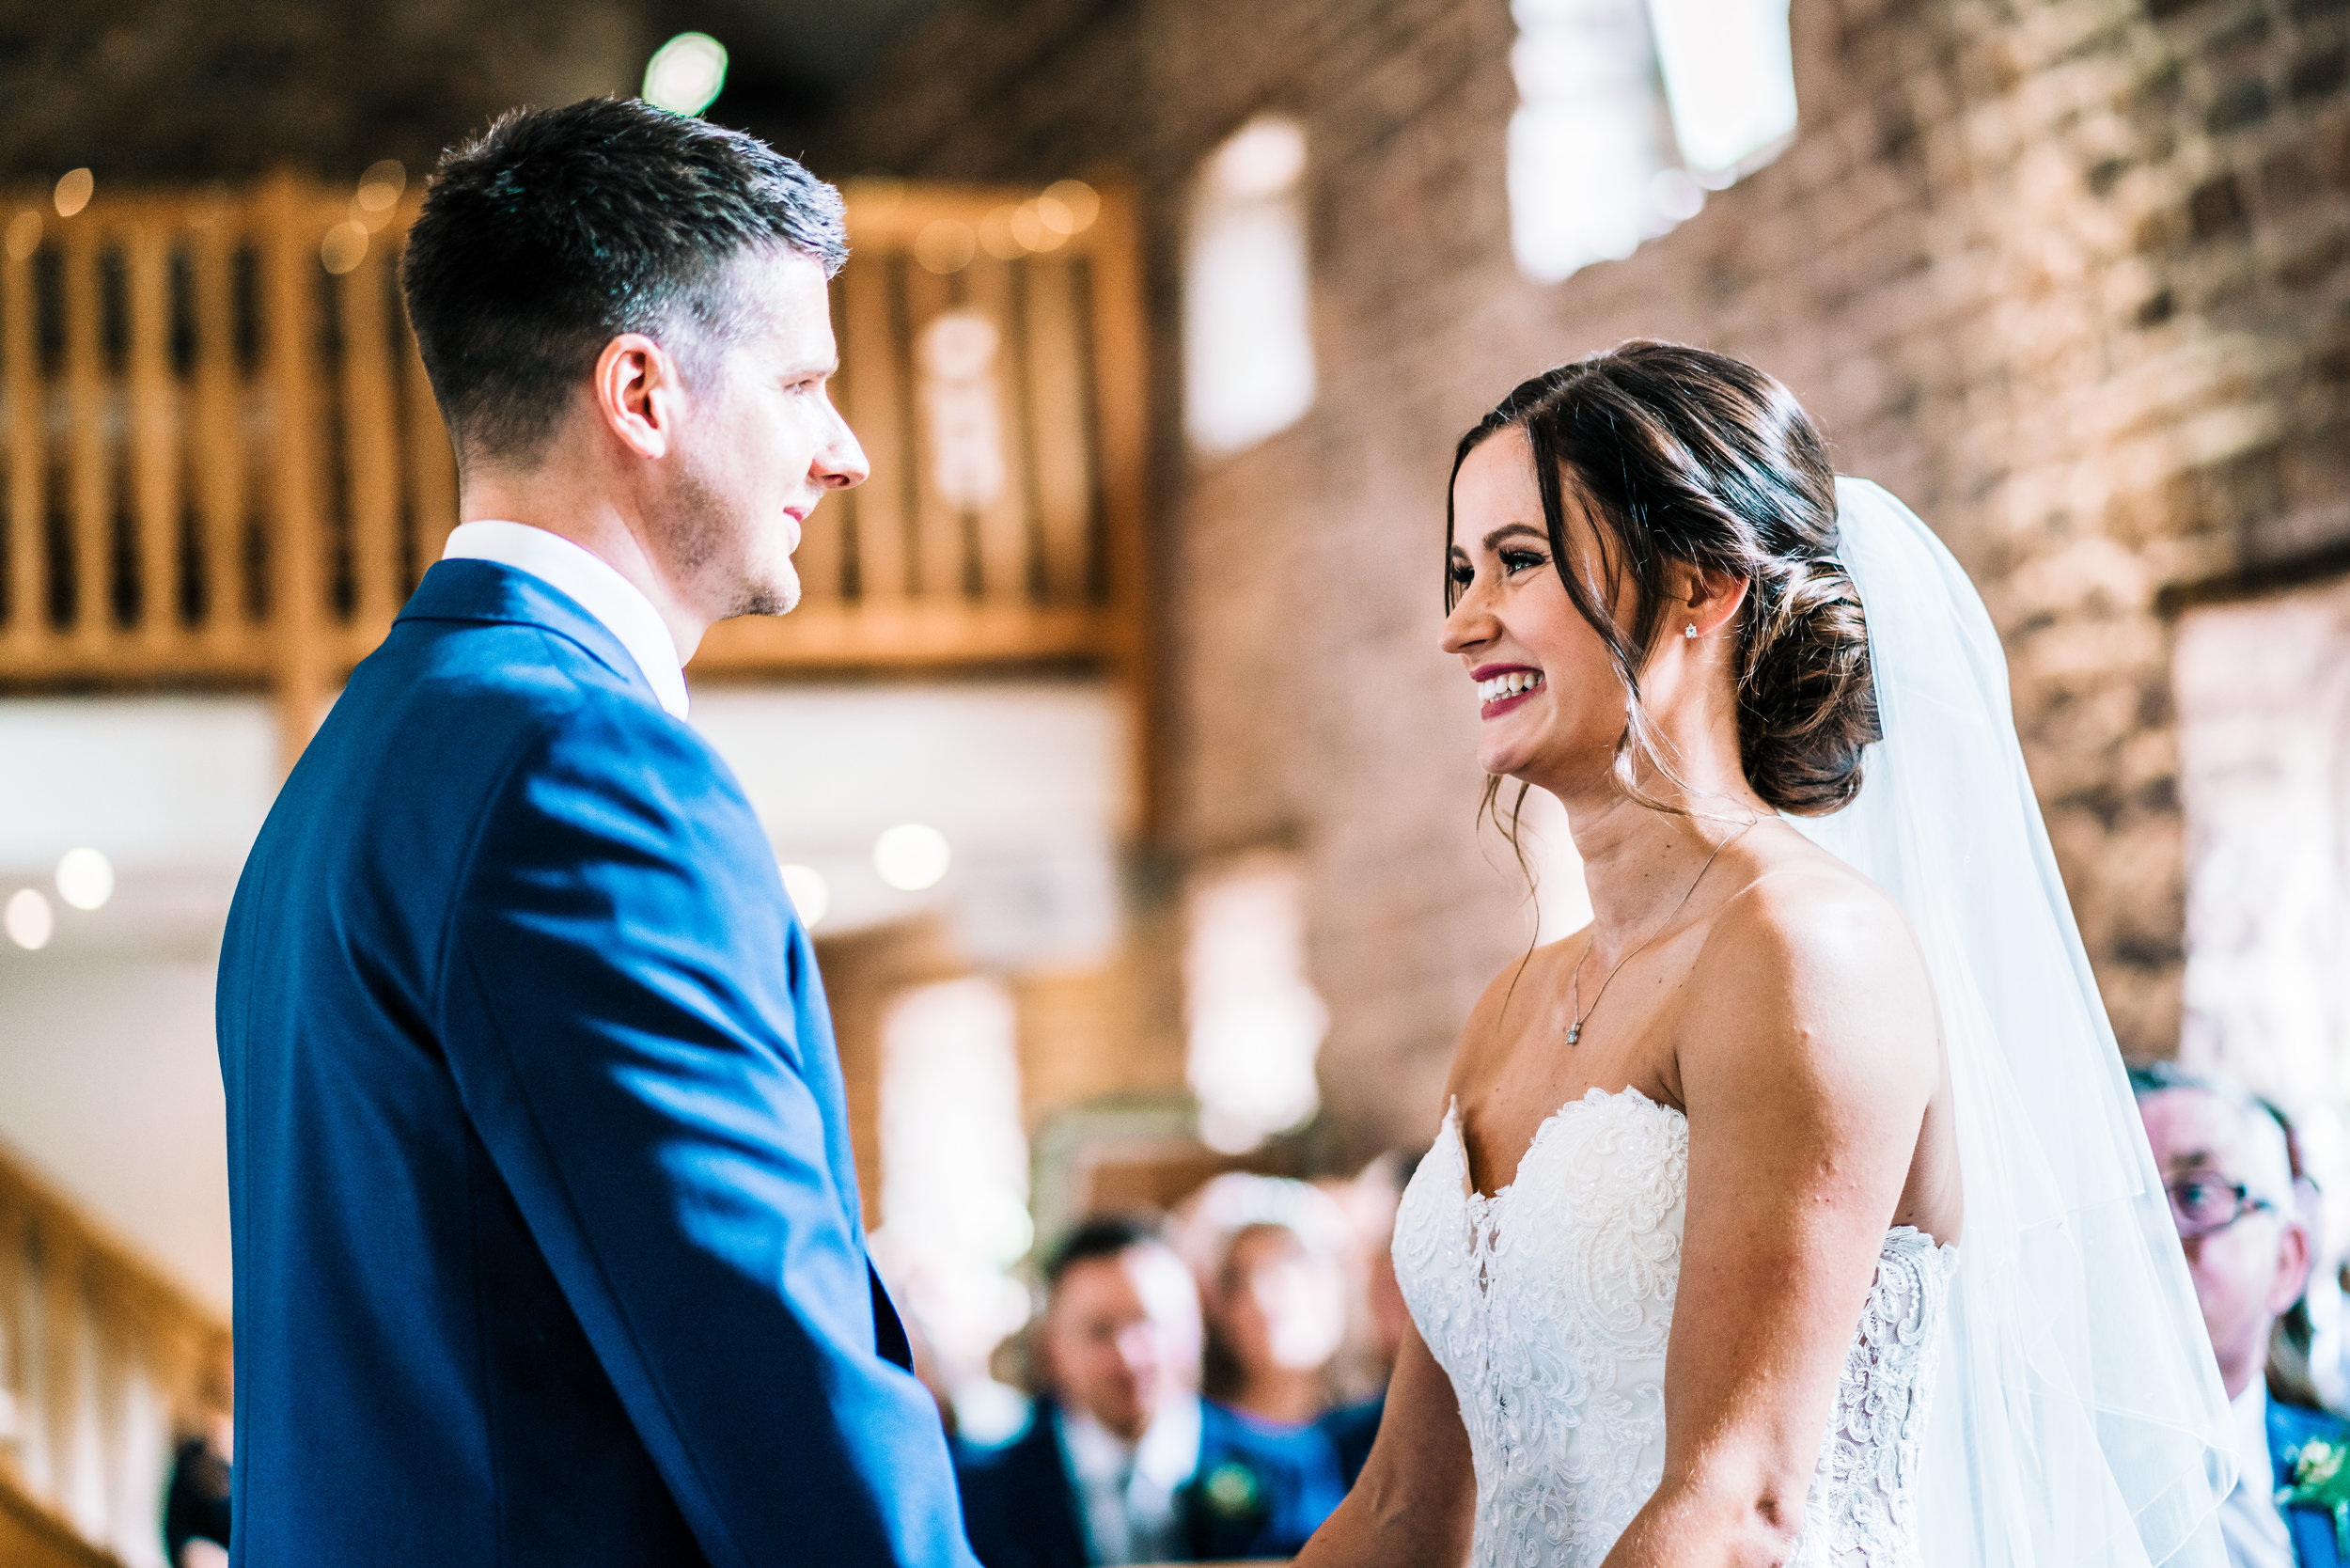 WEDDING CEREMONY AT THE ASHES BARNS VENUE